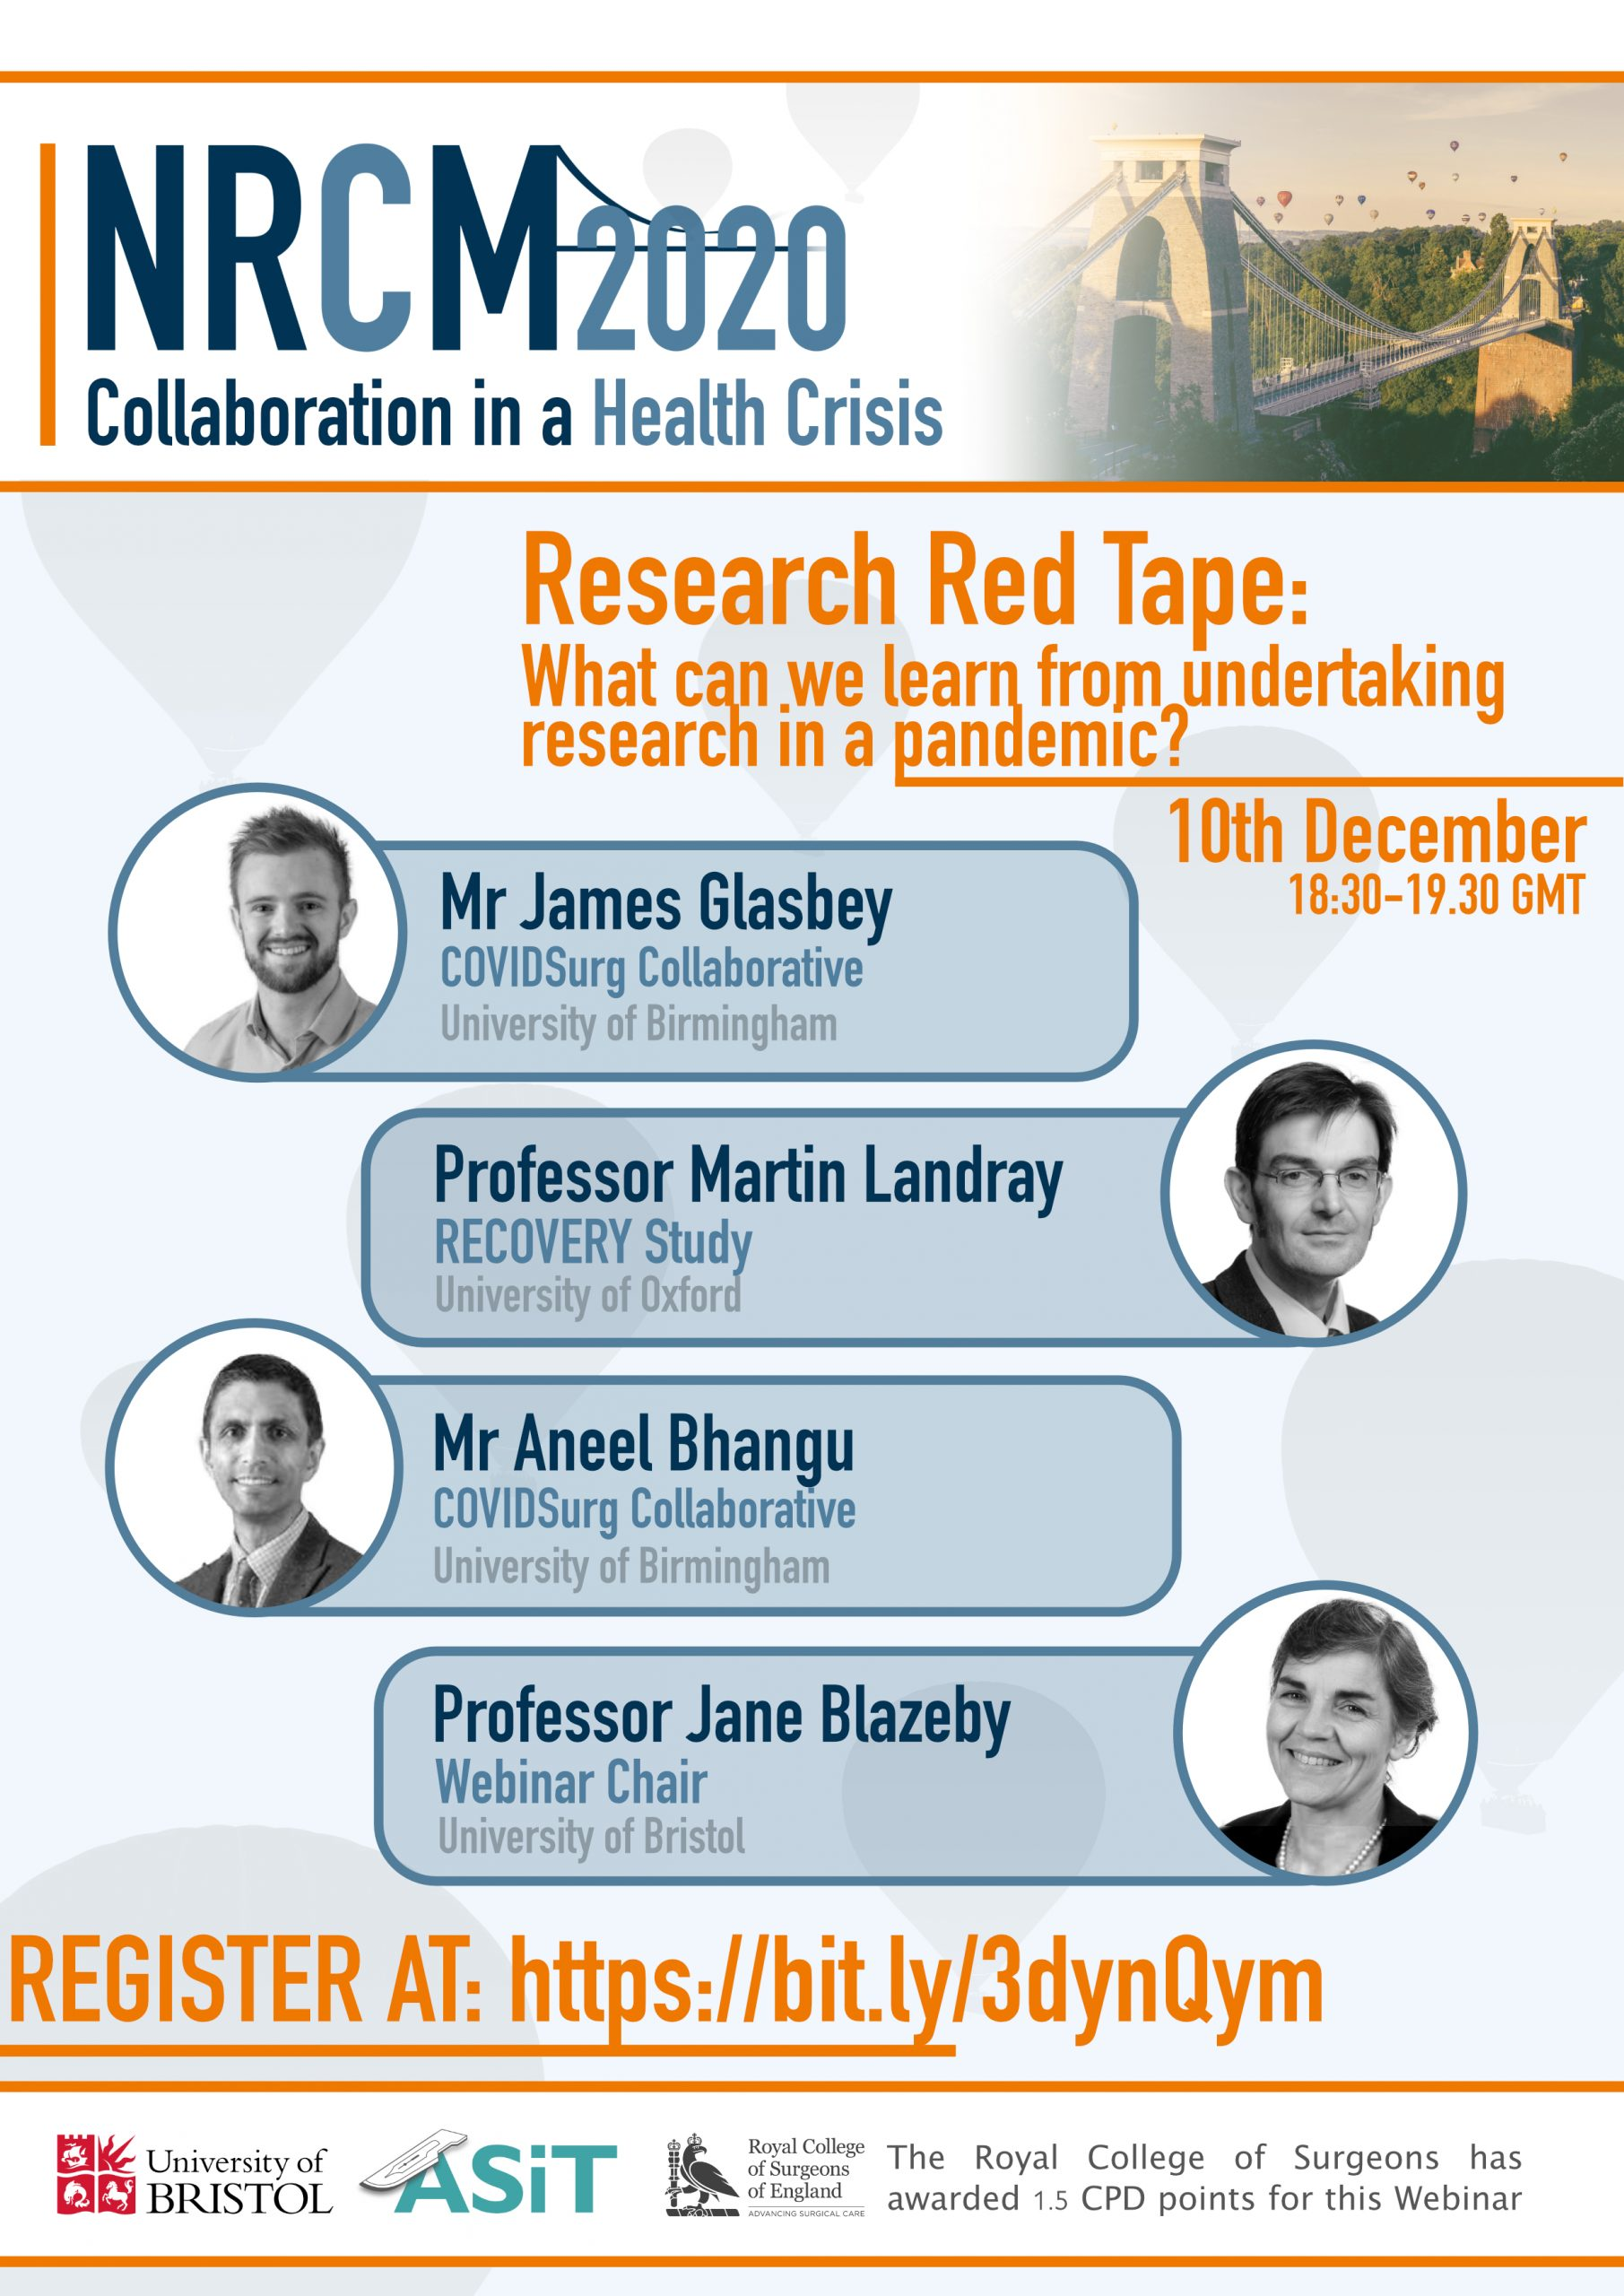 Research Red Tape